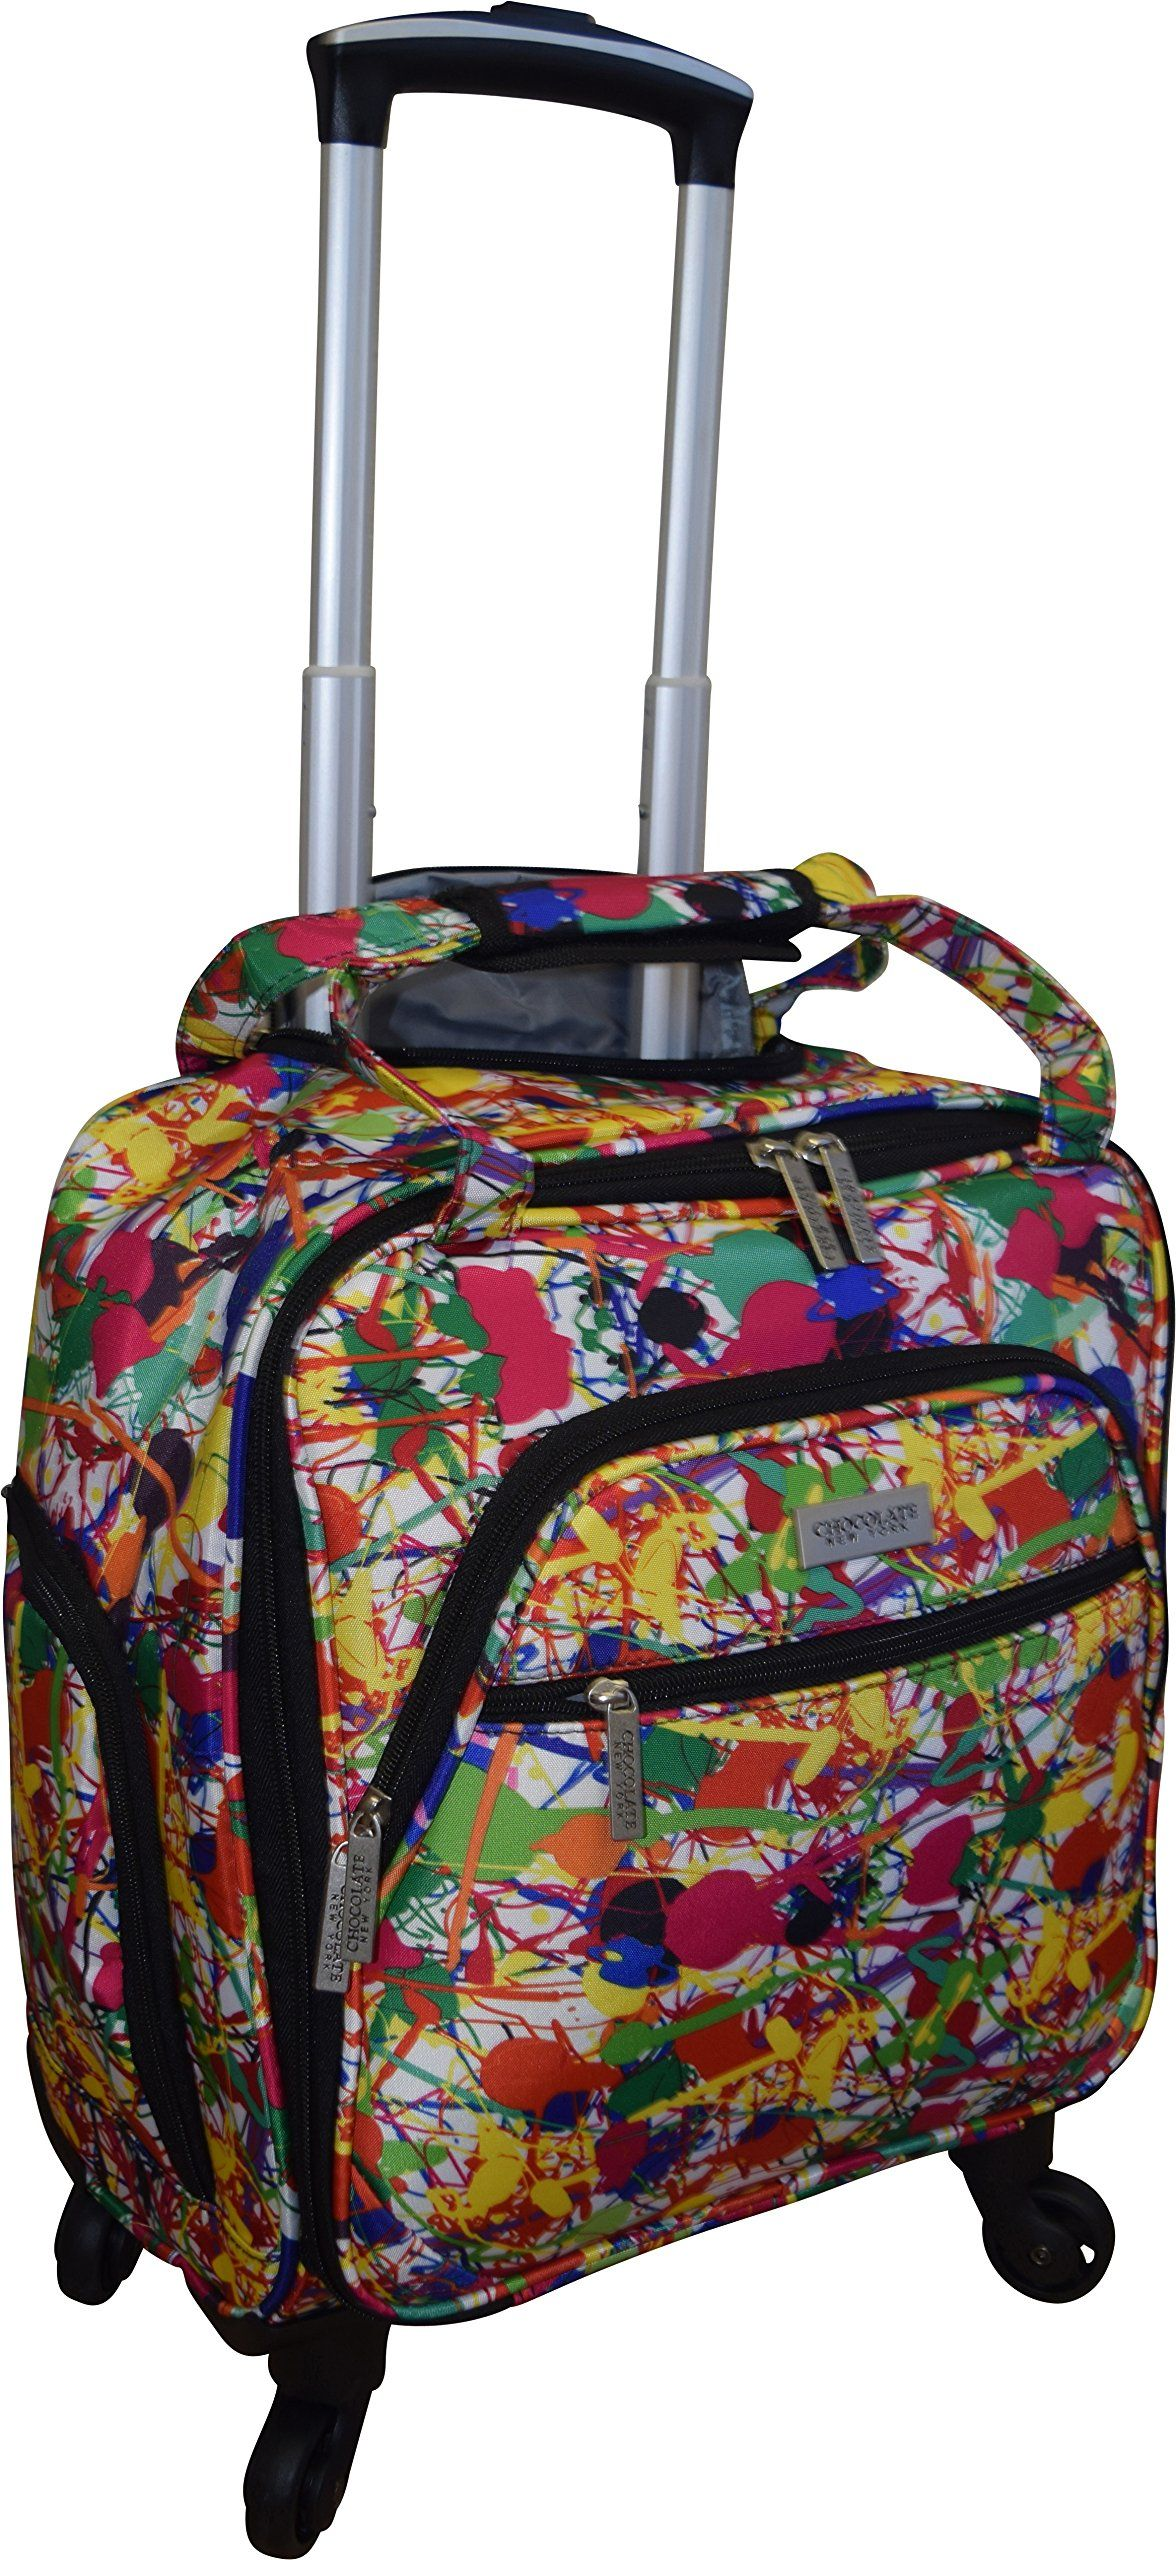 New York Chocolate Travel 18 Inch Carry-On Wheeled Luggage (Flower ...